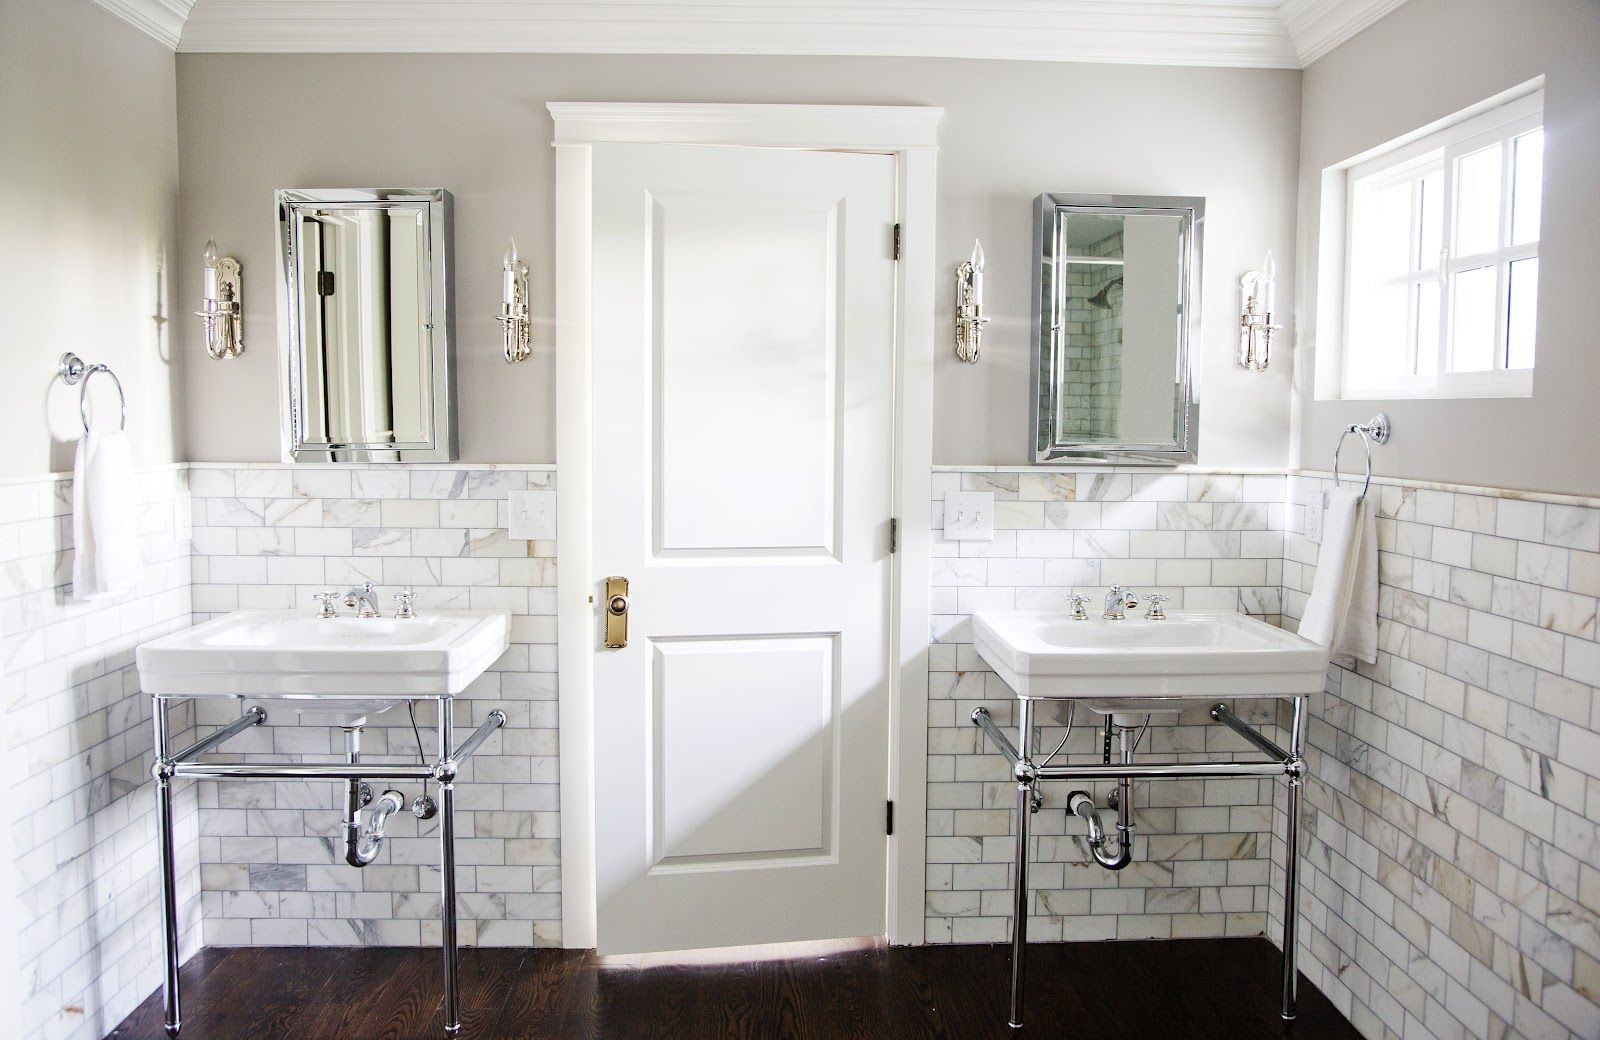 Benjamin Moore Revere Pewter greige paint, Calcutta Gold marble ...